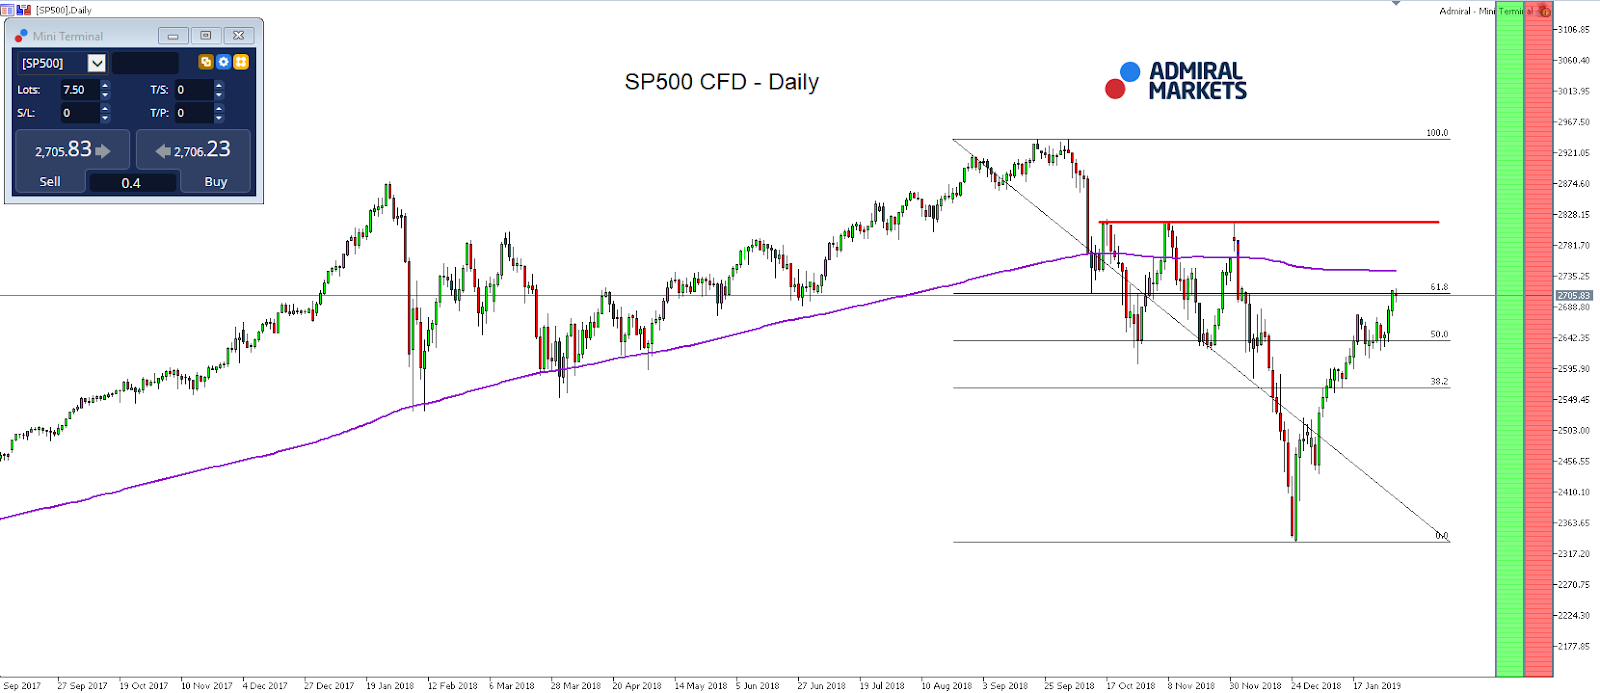 SP500 CFD Daily Chart